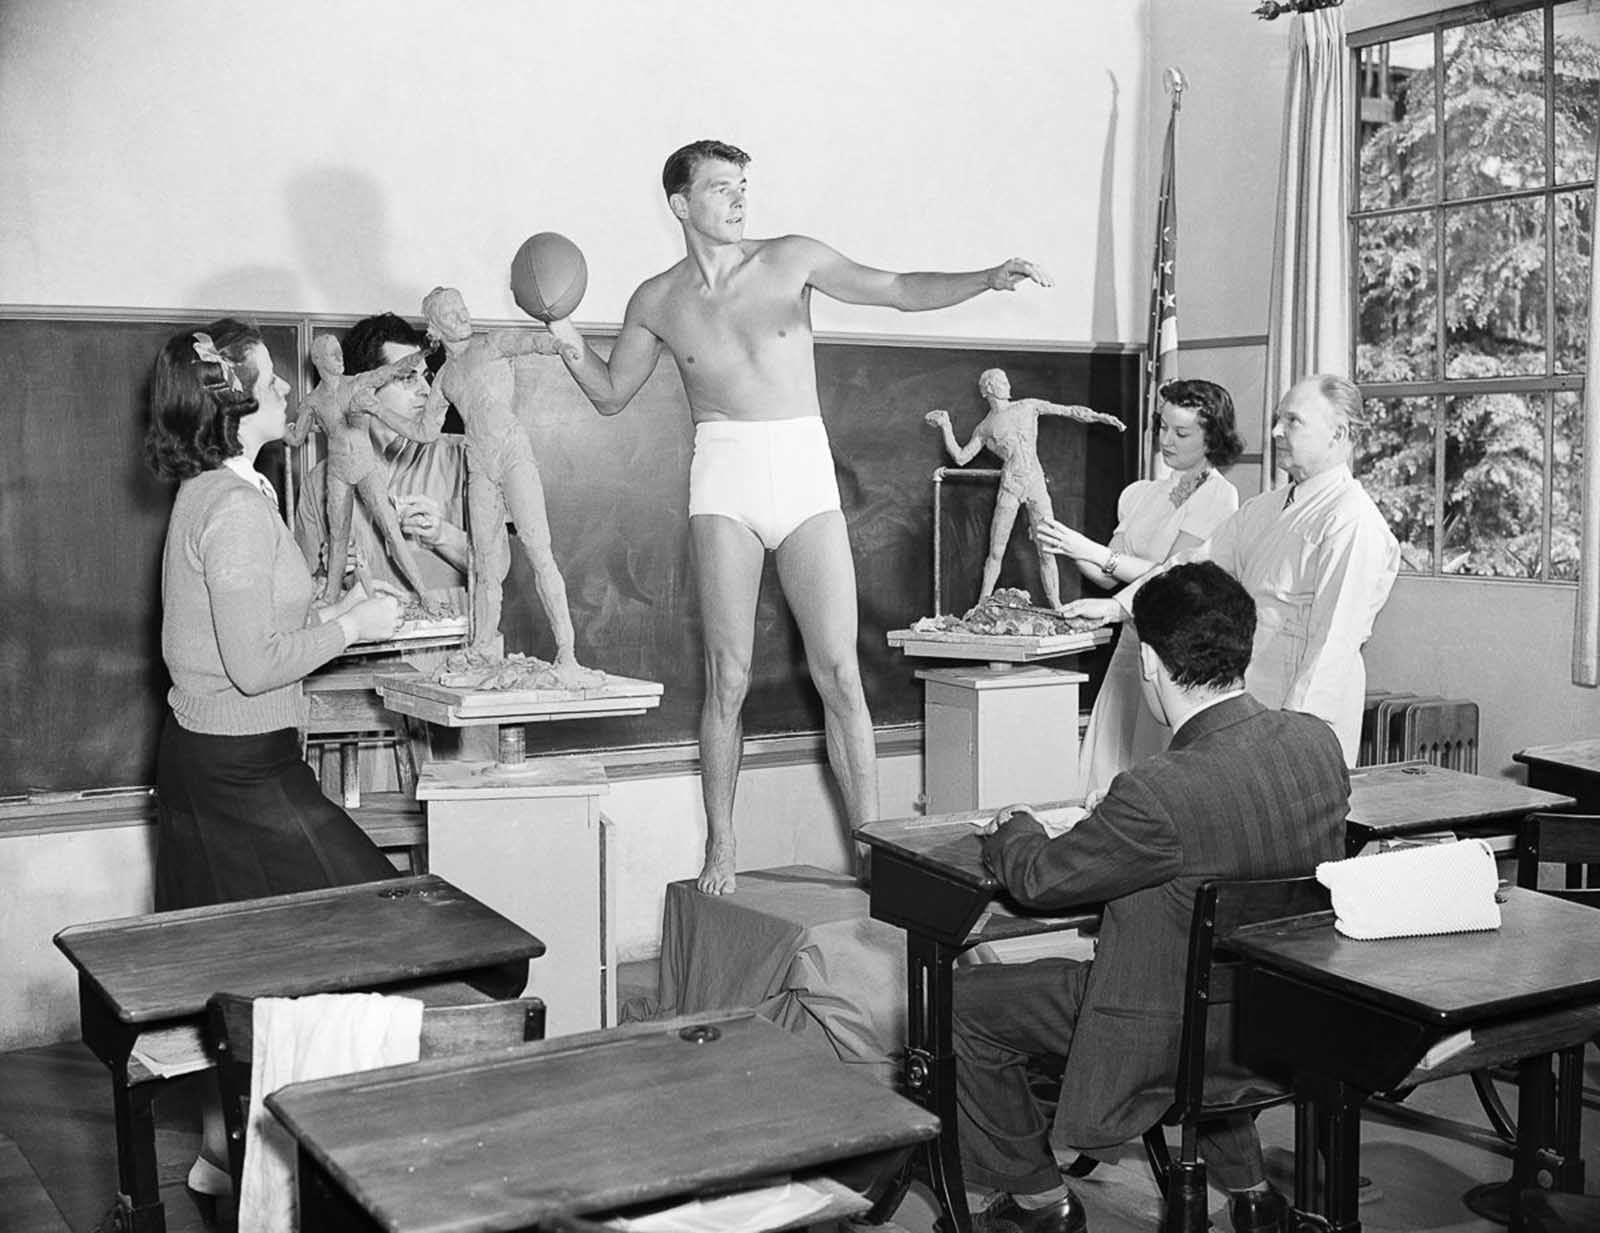 Ronald Reagan poses for a sculpture class at the University of Southern California. 1940.